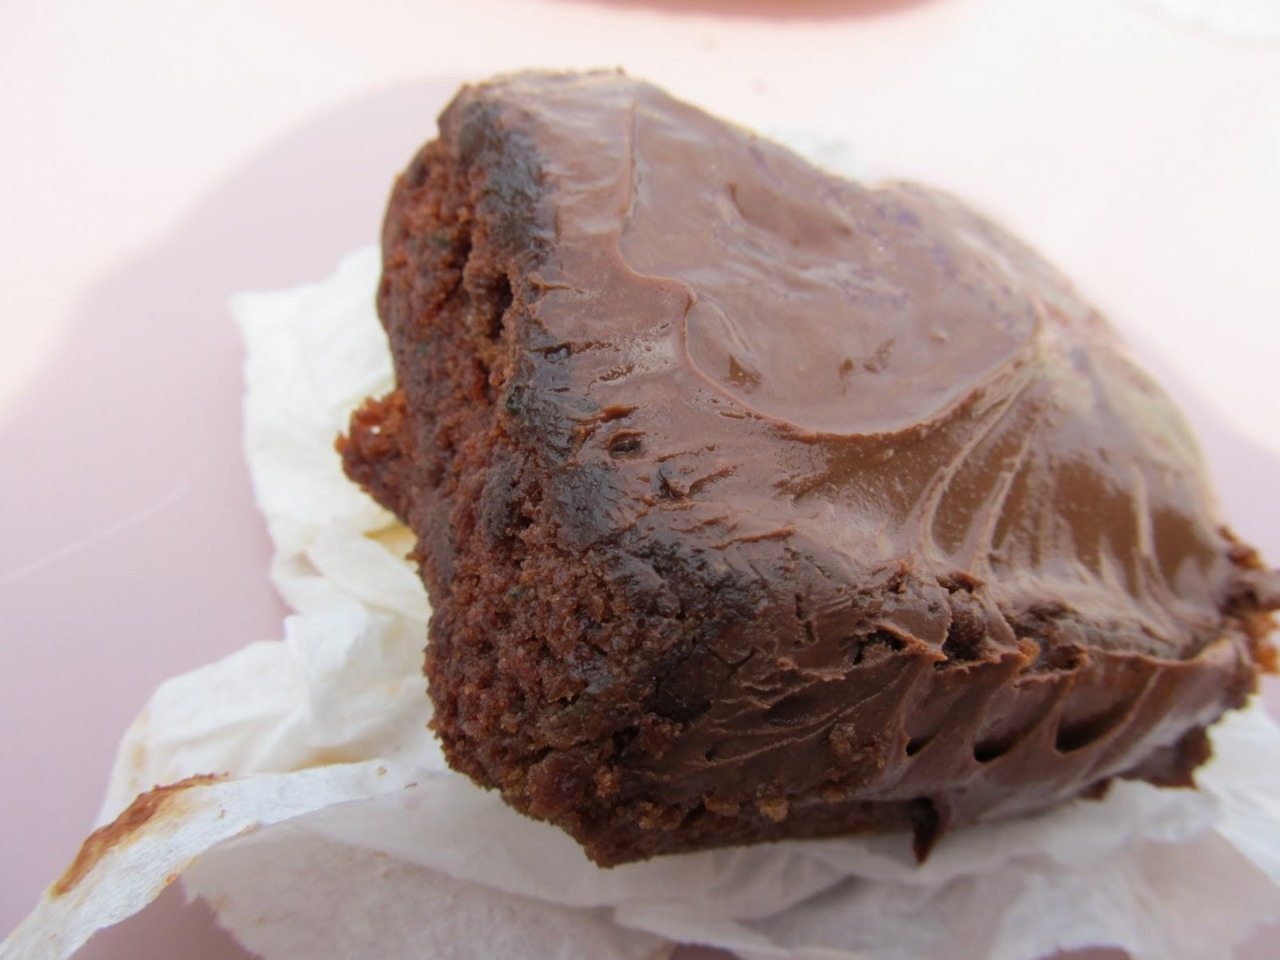 """Chocolate fudge brownie, from the Topeka Farmer's Market last summer."" Photo by Stefan B. Help Stefan win Womply's Favorite Eats Photo Contest by clicking the photo and hitting ""Like""! To learn more about the contest, click here."